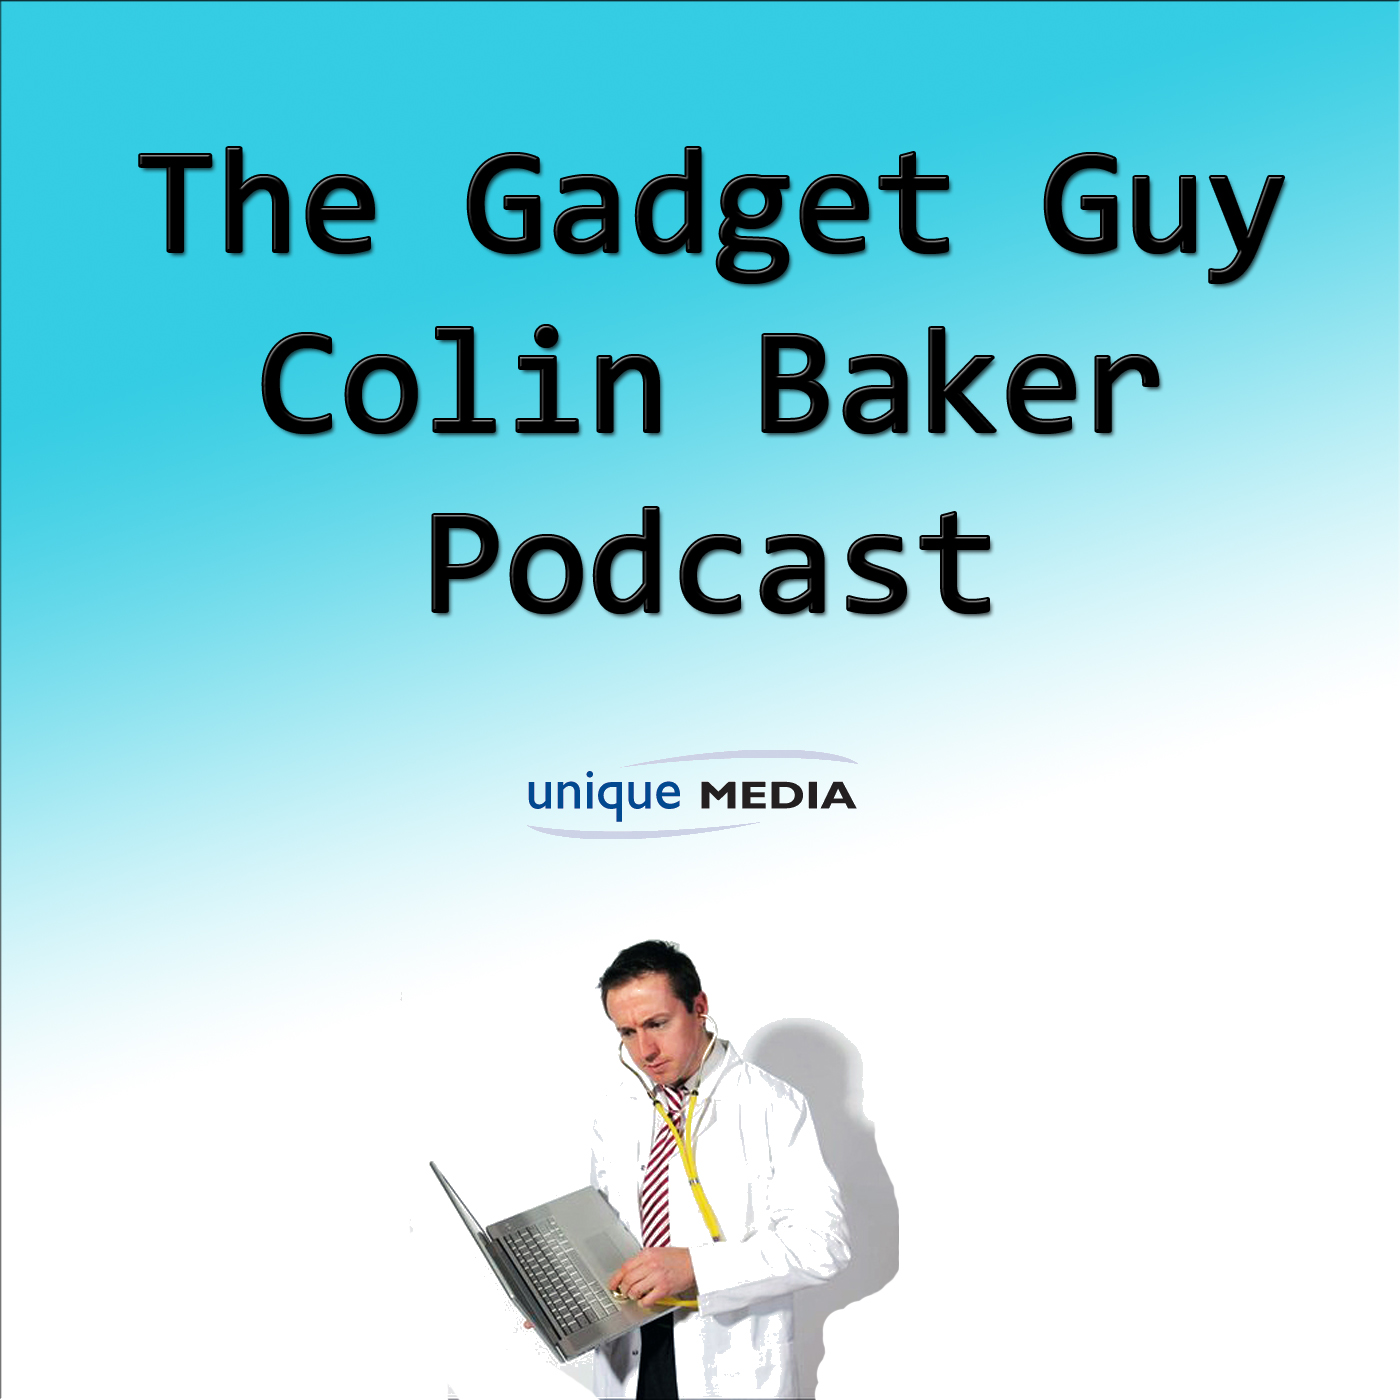 The Gadget Guy Colin Baker Podcast